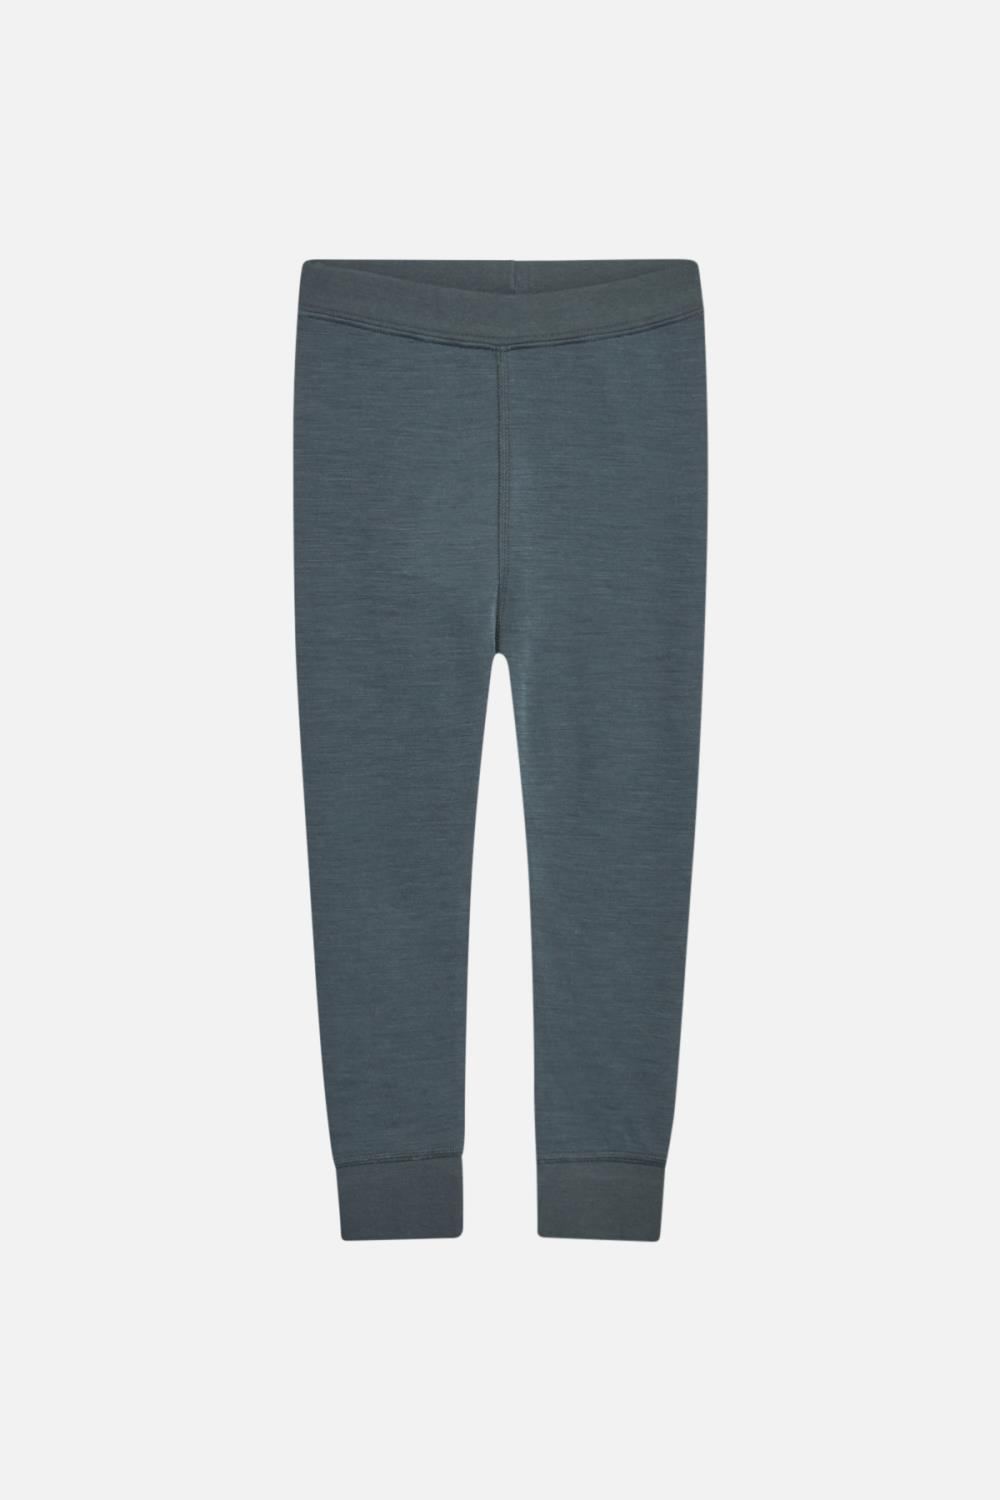 Hust and Claire - Loui  Leggings, Pineneedle